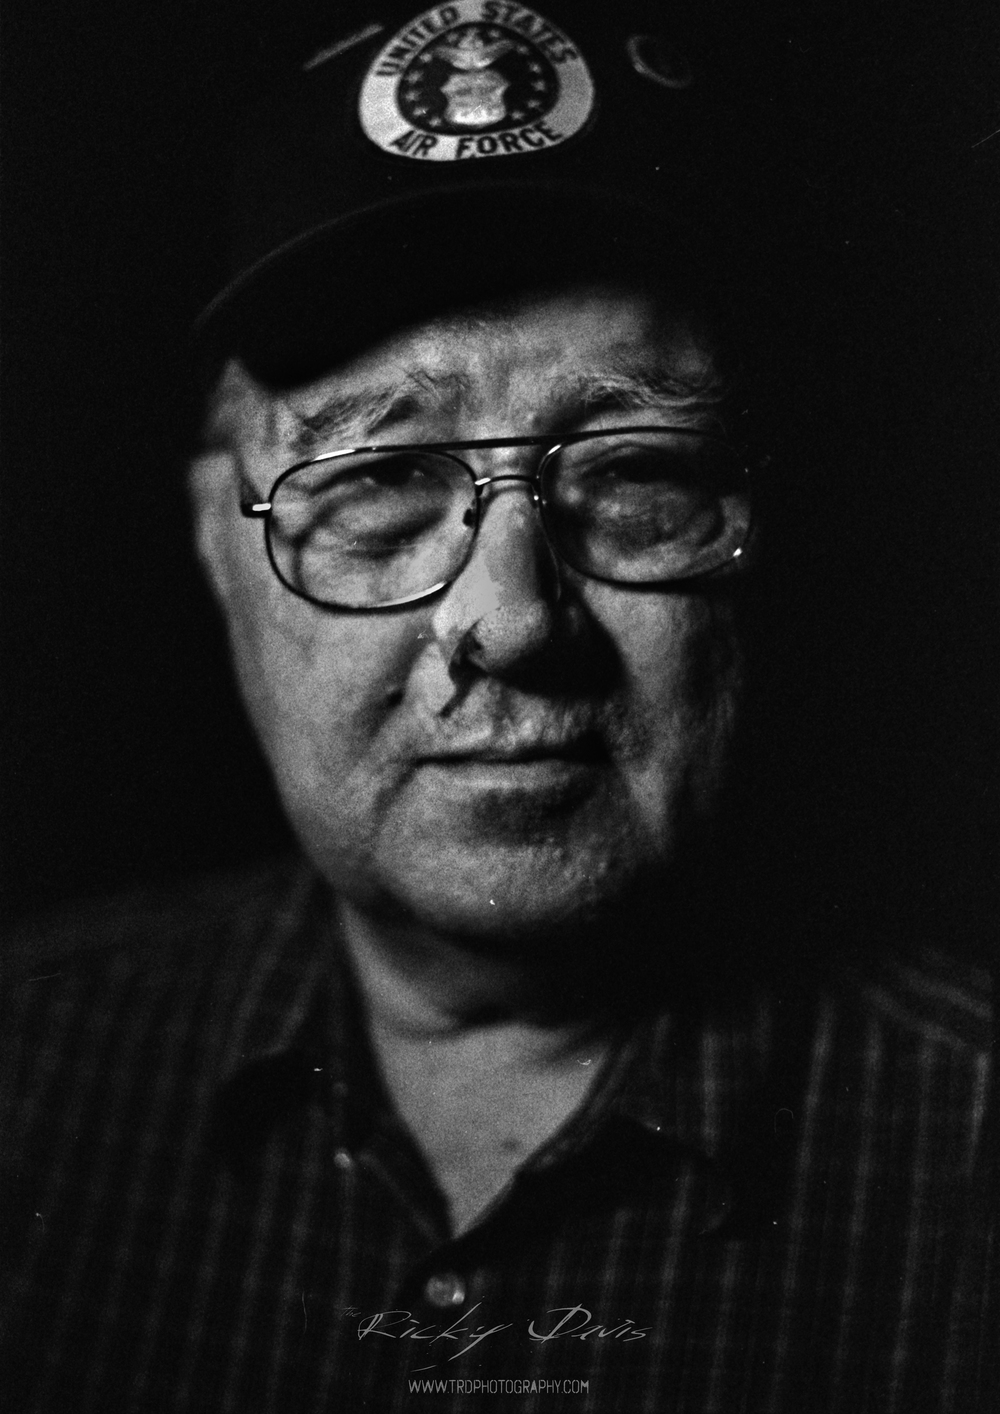 Staff Sgt. Bill Potter - Photo - Ricky Davis of TRD Photography - Film - Fuji Acros 100